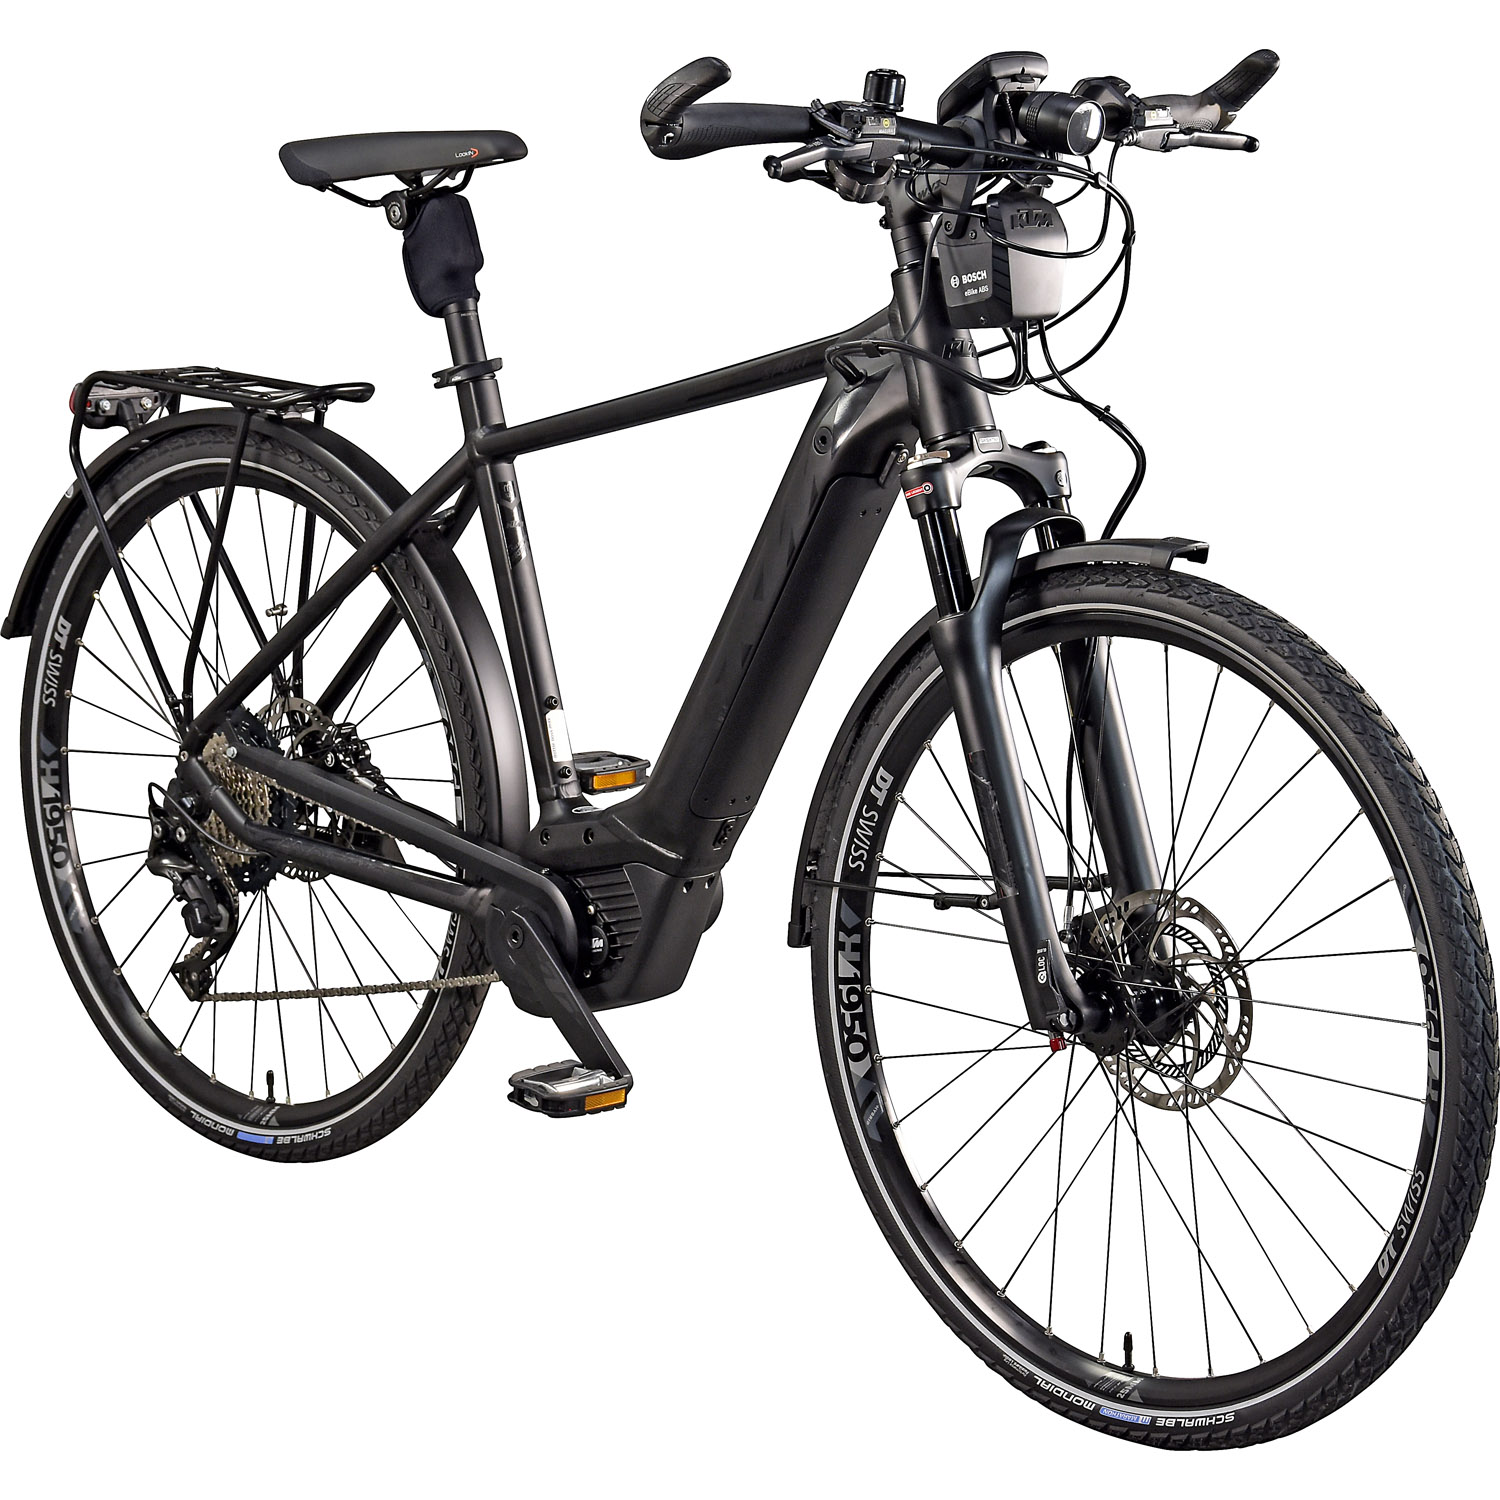 ktm macina sport abs elektrofahrrad trekkingbike 51 cm. Black Bedroom Furniture Sets. Home Design Ideas